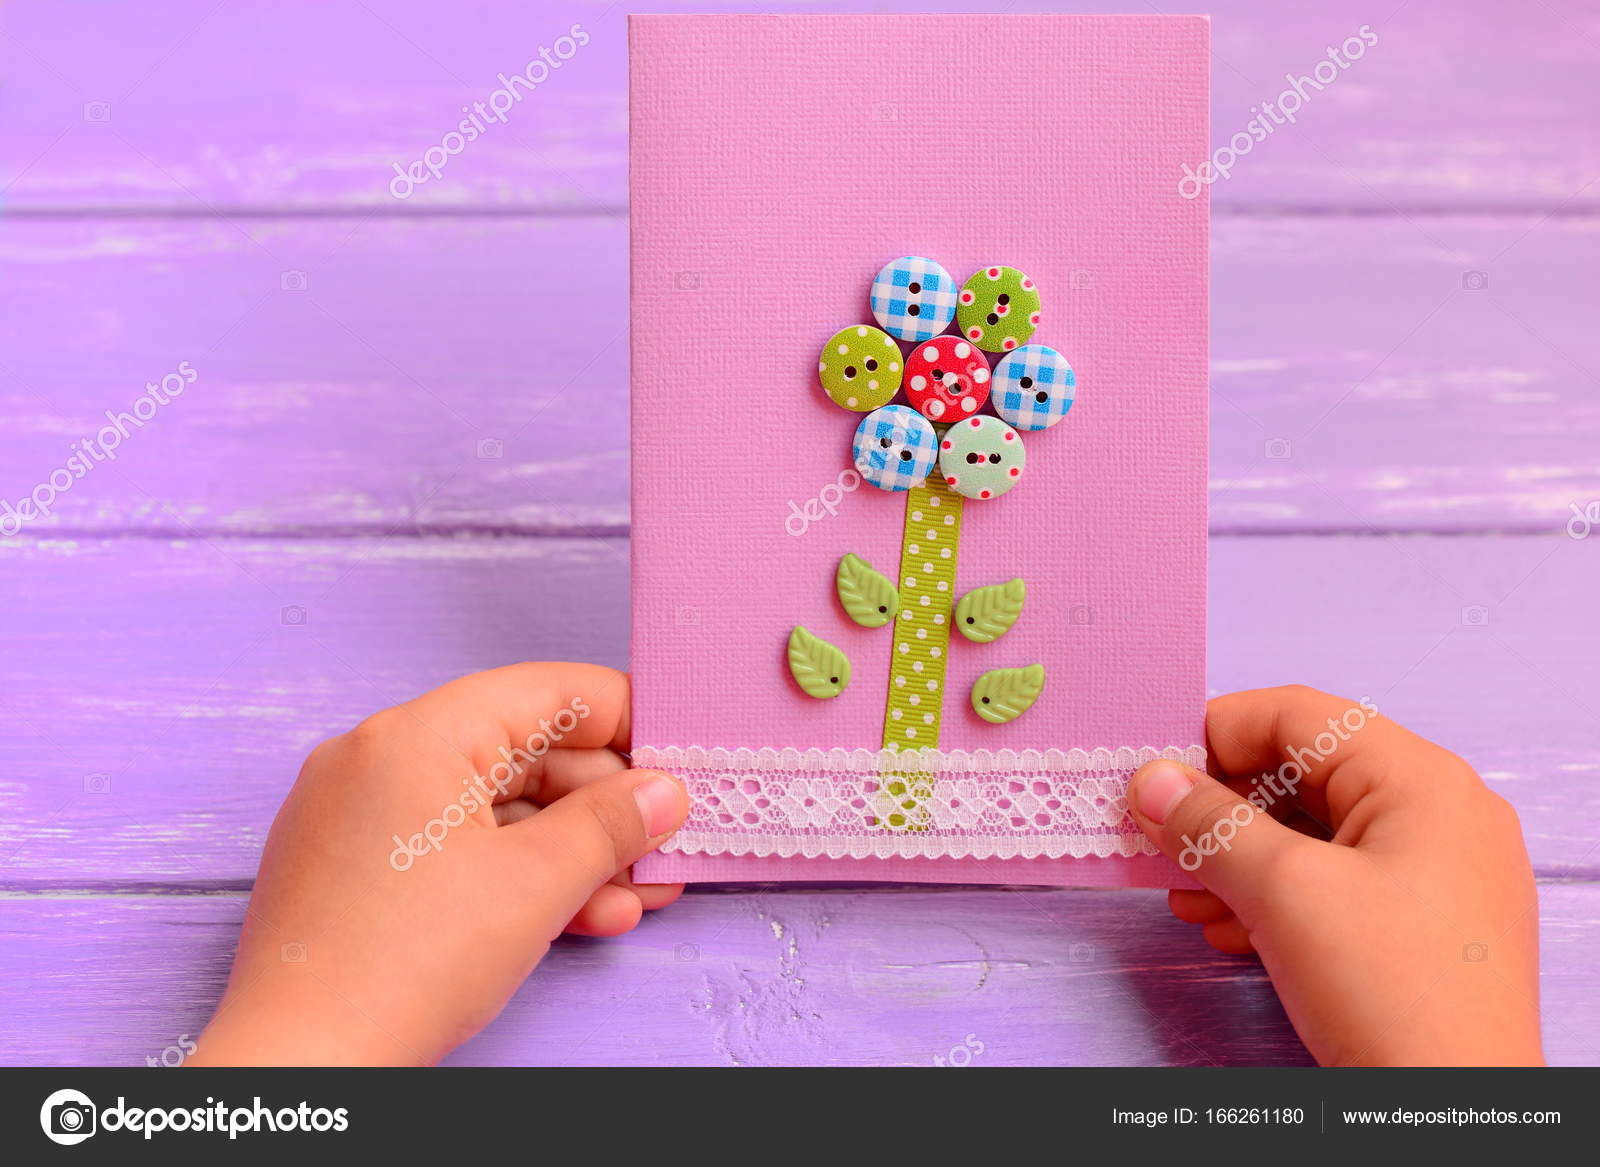 Child holds a flower card in his hands child made a greeting card mothers day cards to make in school homemade mothers day card idea mothers day cards ideas for preschool mothers day cards handmade easy m4hsunfo